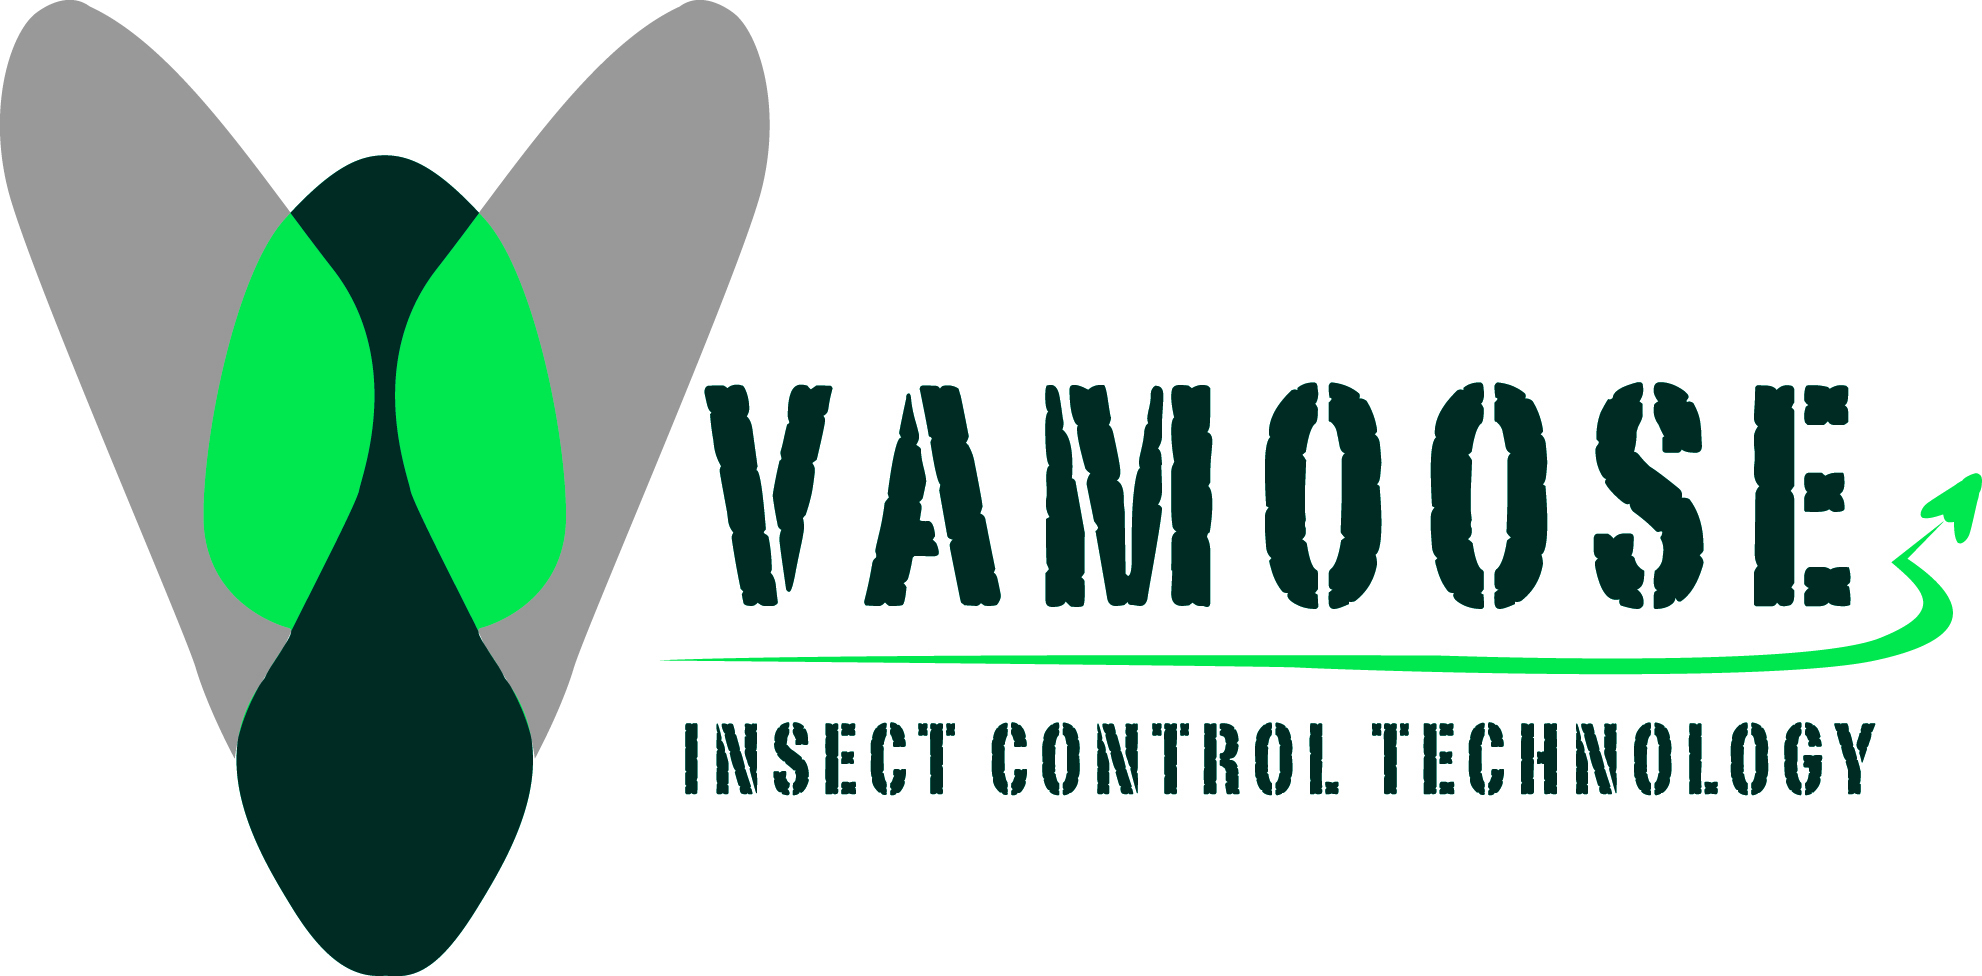 Vamoose Insect Control Technologie Horseware